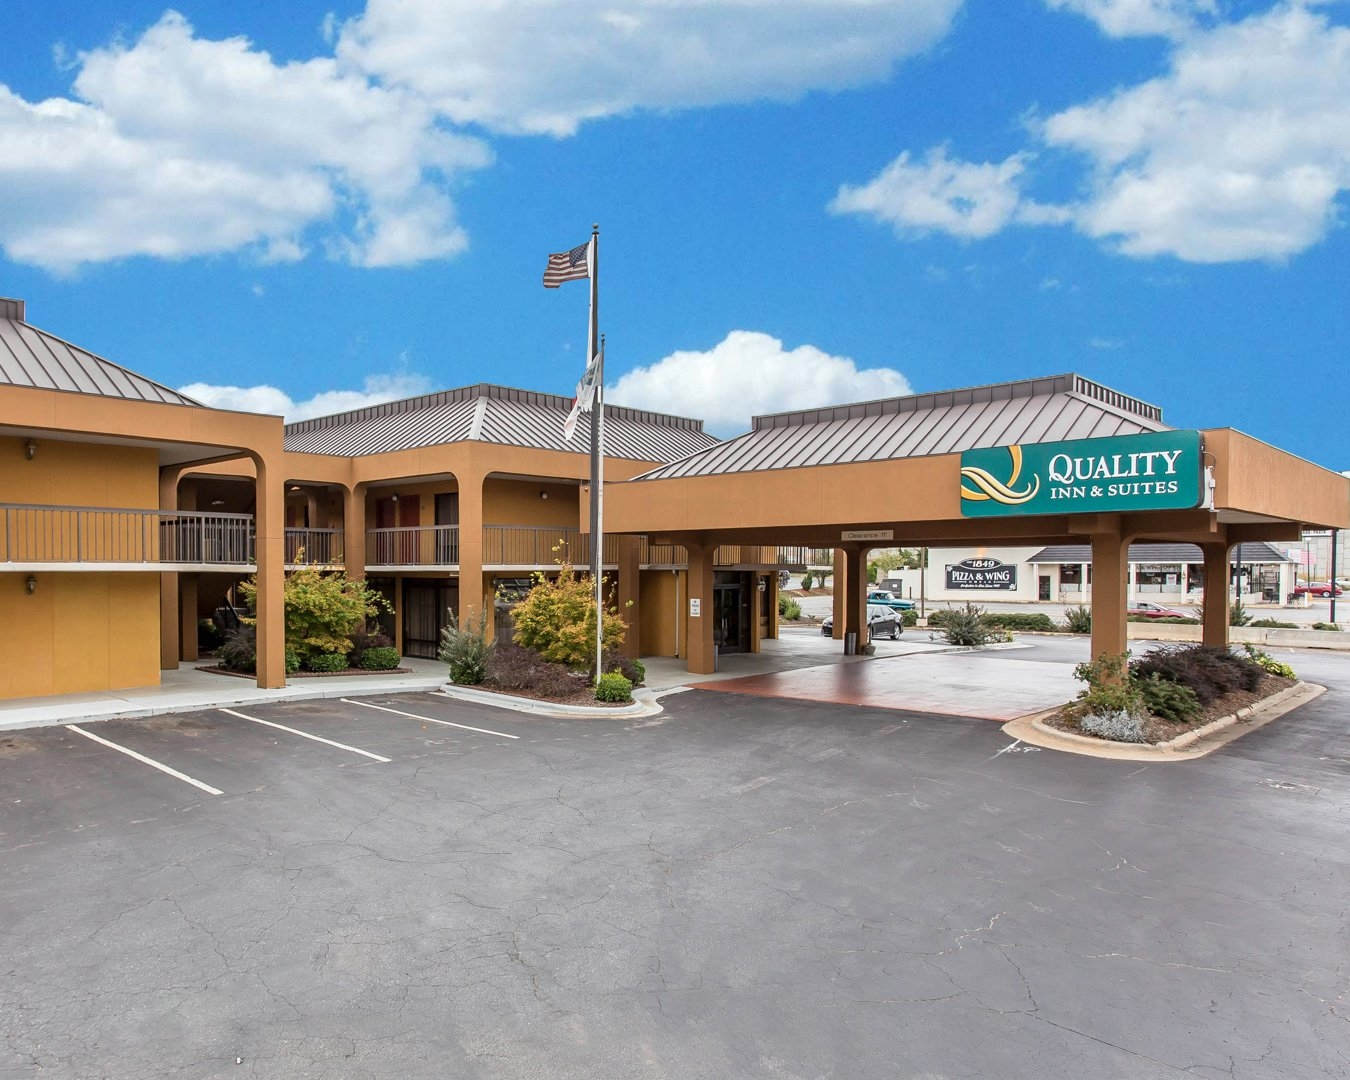 Pet Friendly Hotels In Statesville Nc Near I